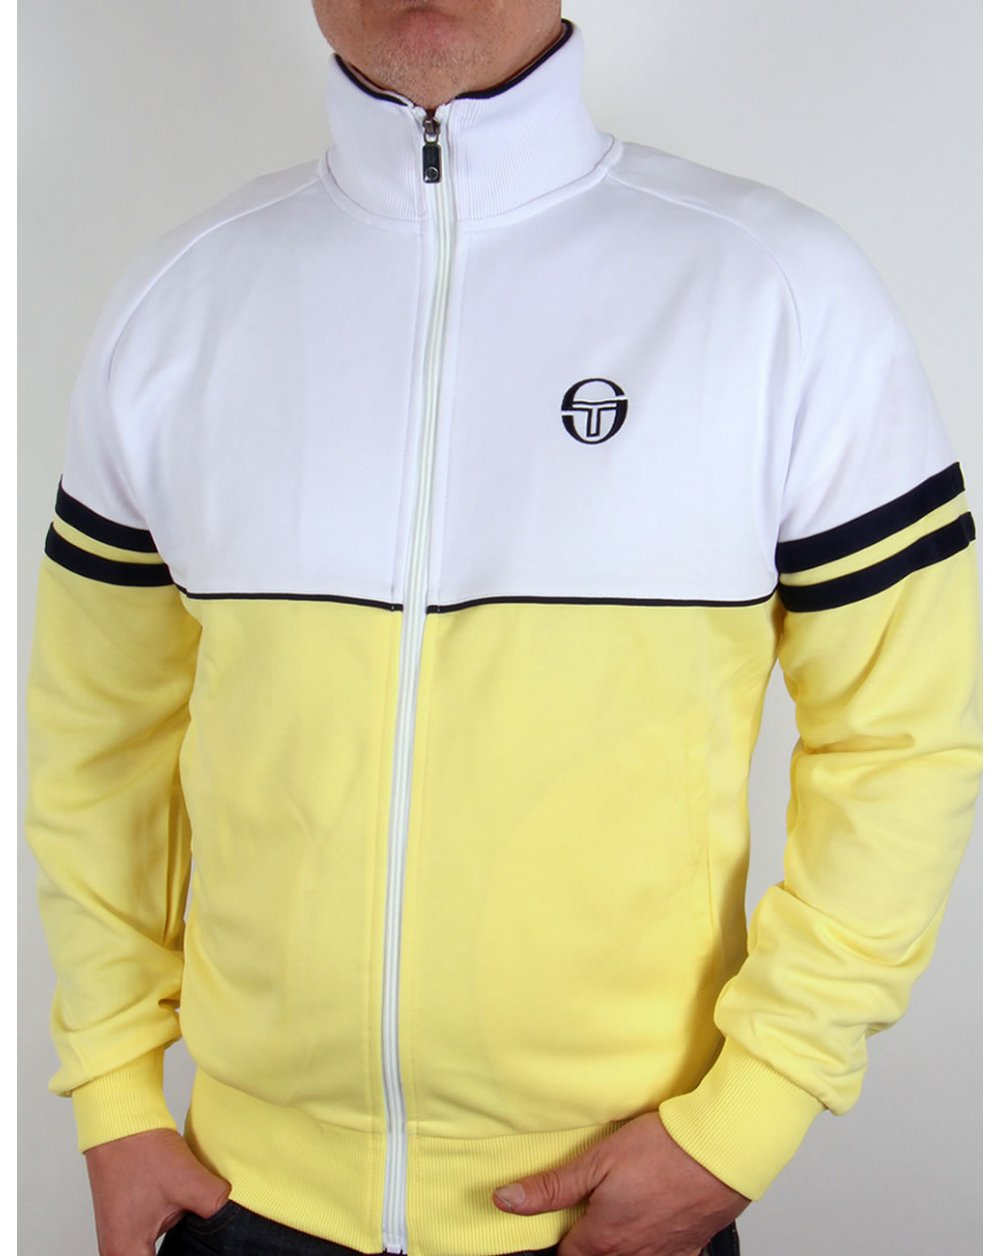 sergio tacchini orion track top white yellow navy. Black Bedroom Furniture Sets. Home Design Ideas